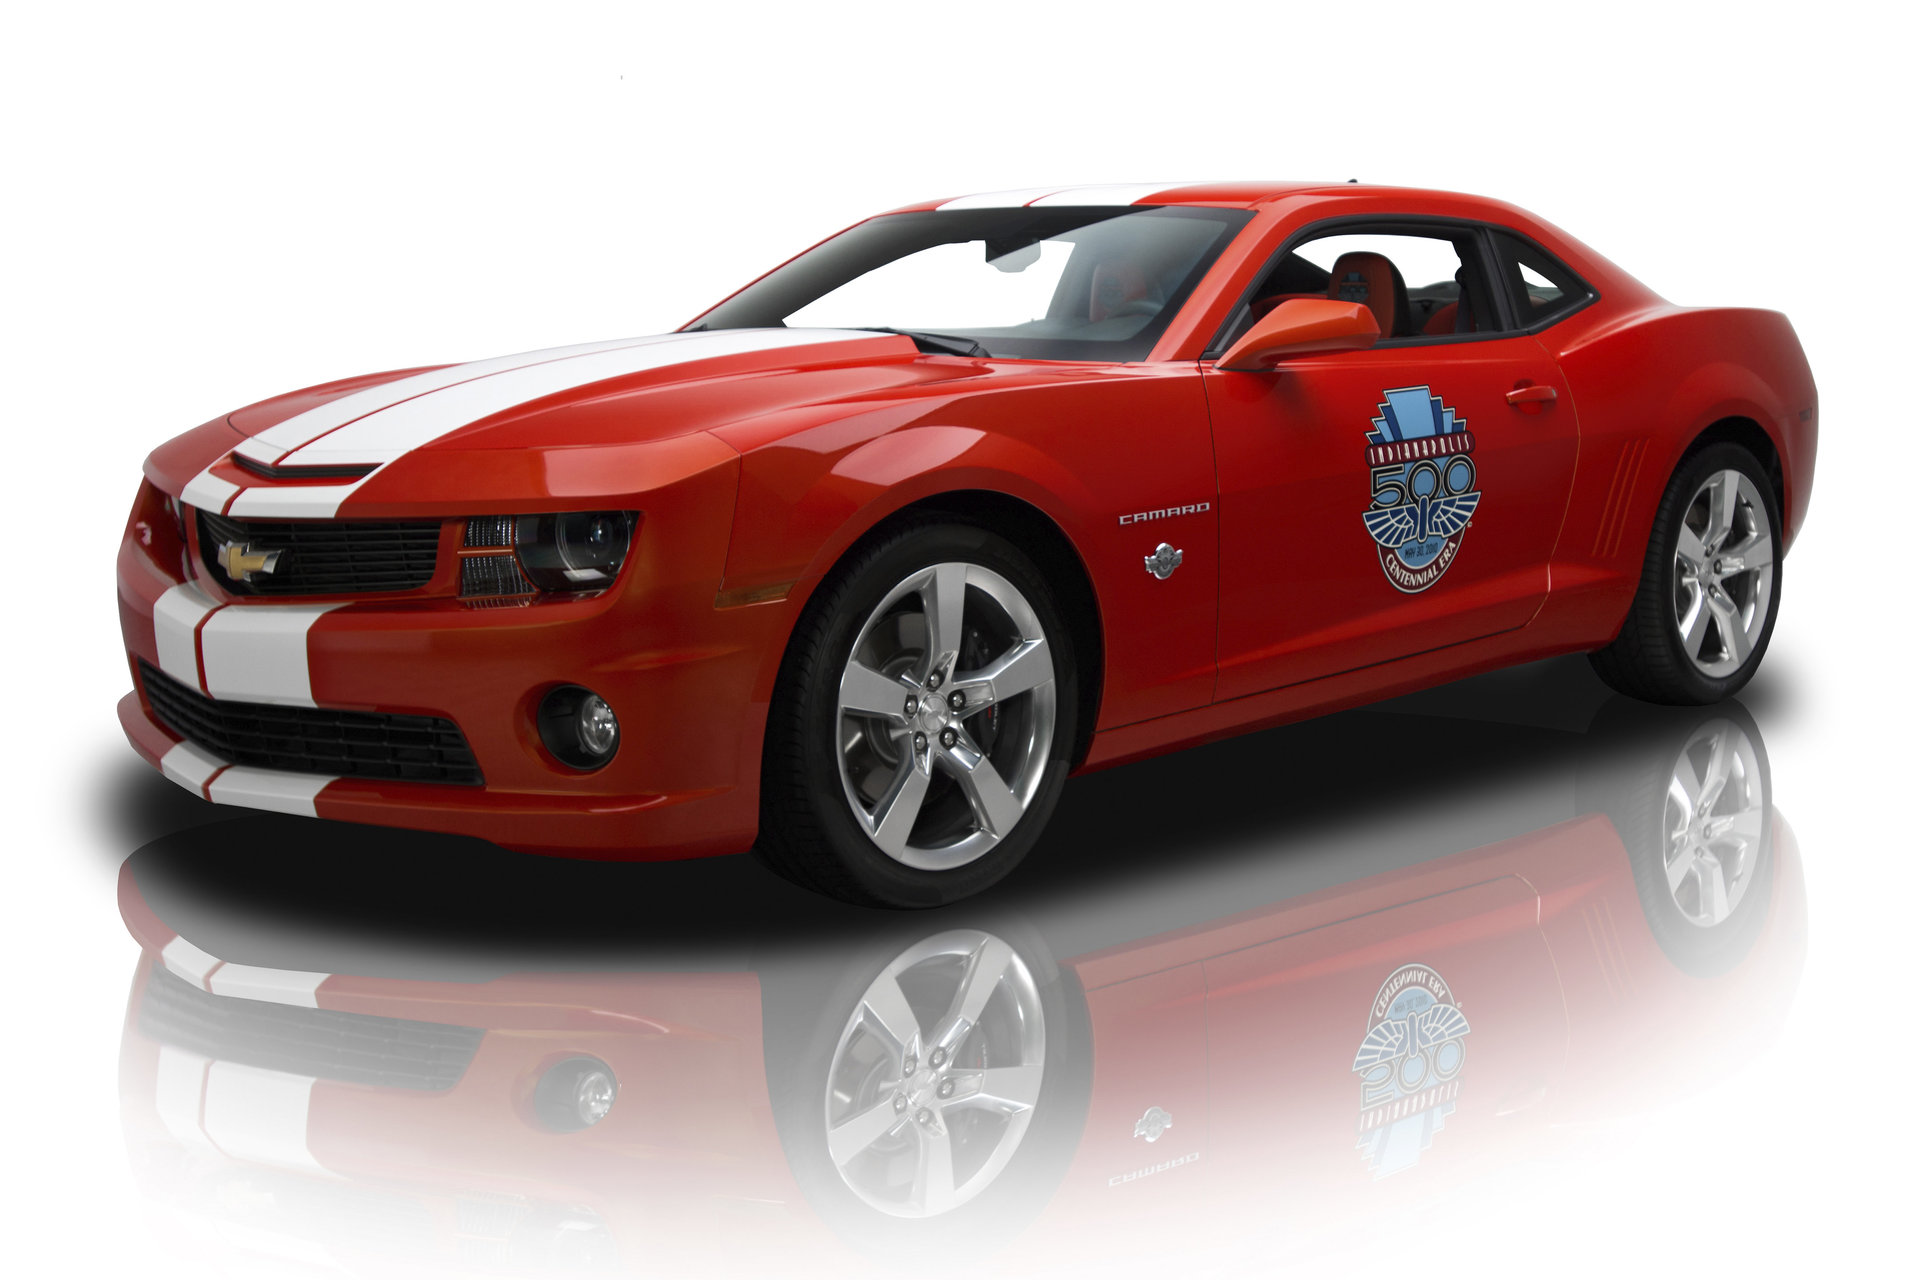 2010 chevrolet camaro indianapolis 500 pace car for sale 75625 mcg. Black Bedroom Furniture Sets. Home Design Ideas